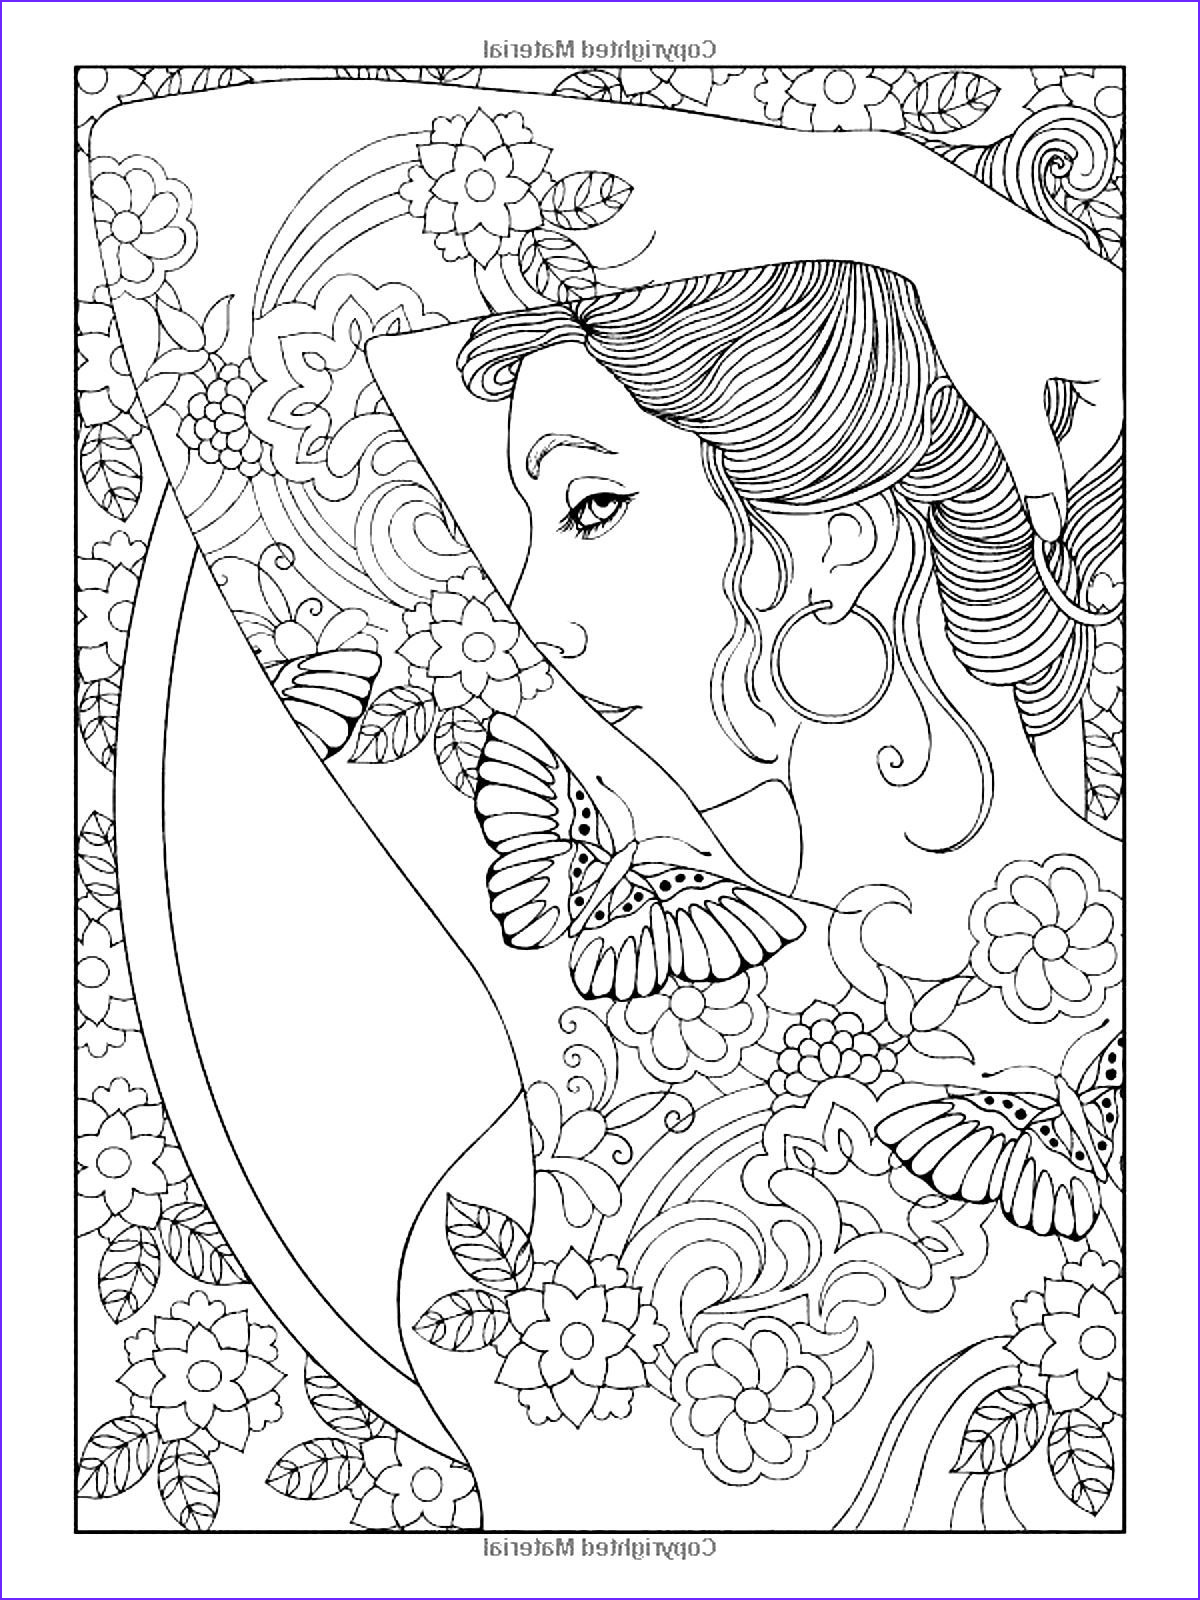 Coloring Pages Of Women Best Of Collection Free Coloring Page Coloring Adult Shoulder Tattooed Woman